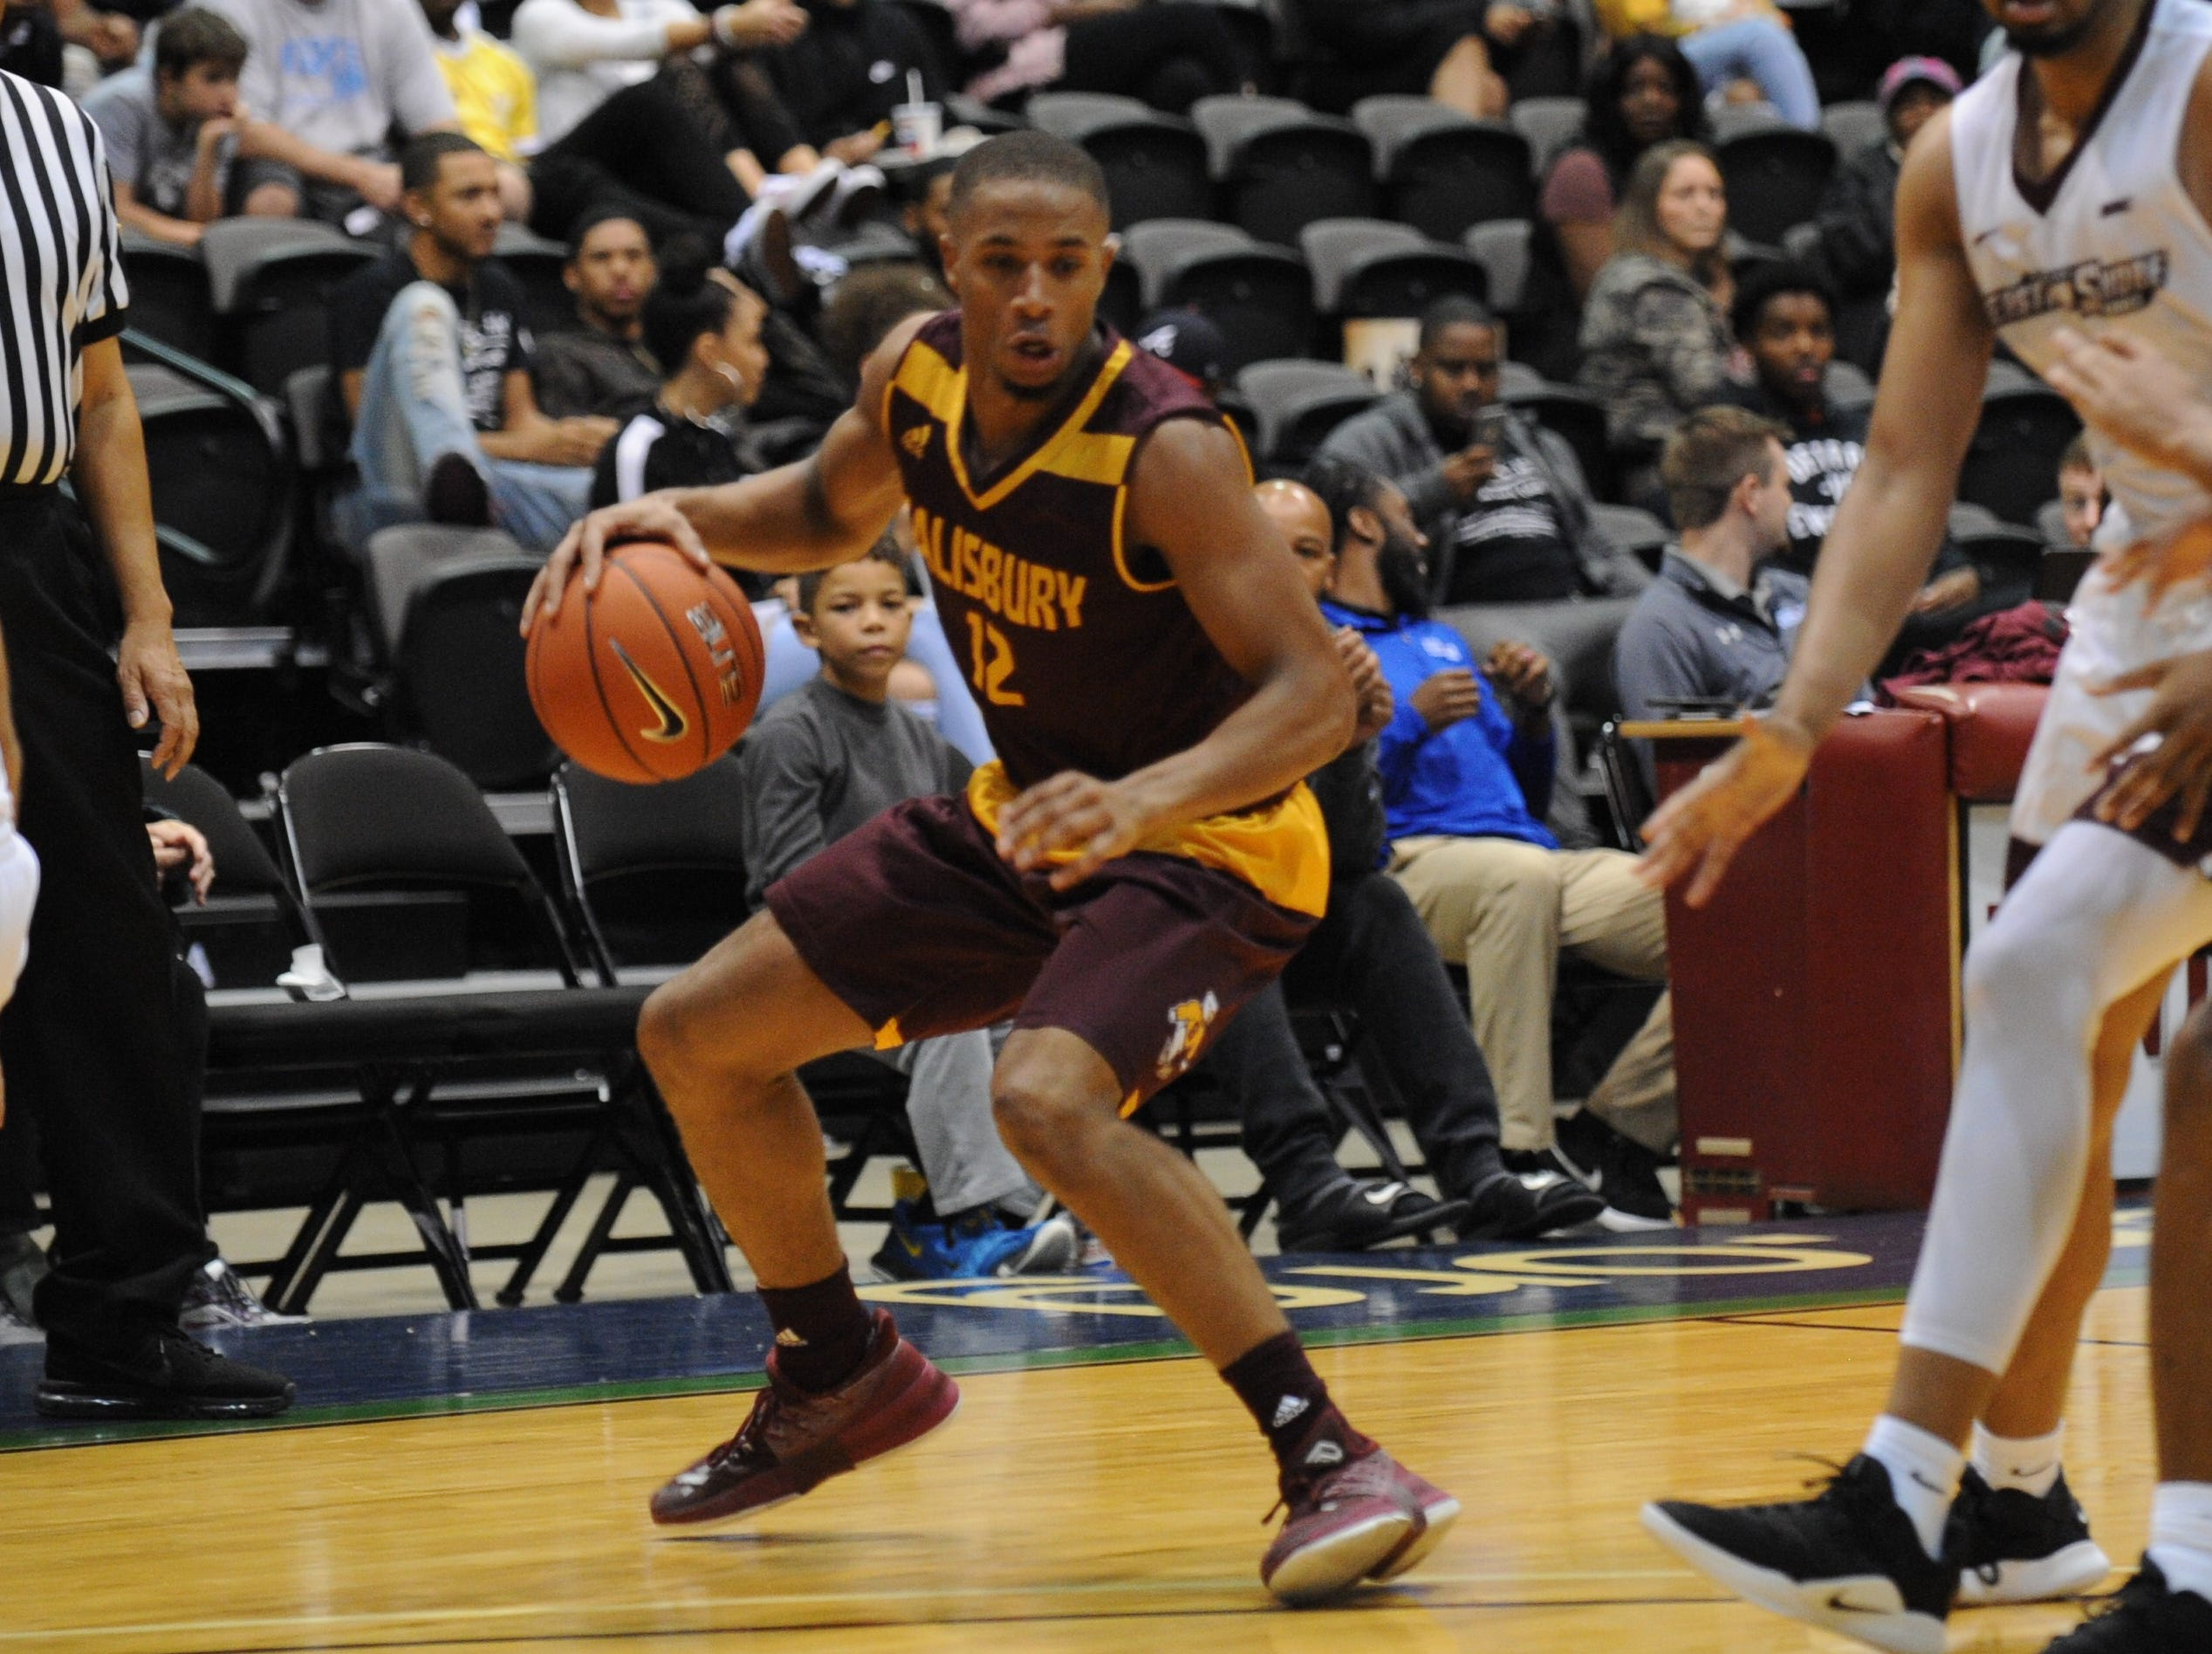 Salisbury University guard Mike Ward takes a step back against the University of Maryland Eastern Shore during the 10-Mile Tipoff on Thursday, Nov. 1, 2018. The Sea Gulls won, 67-60.